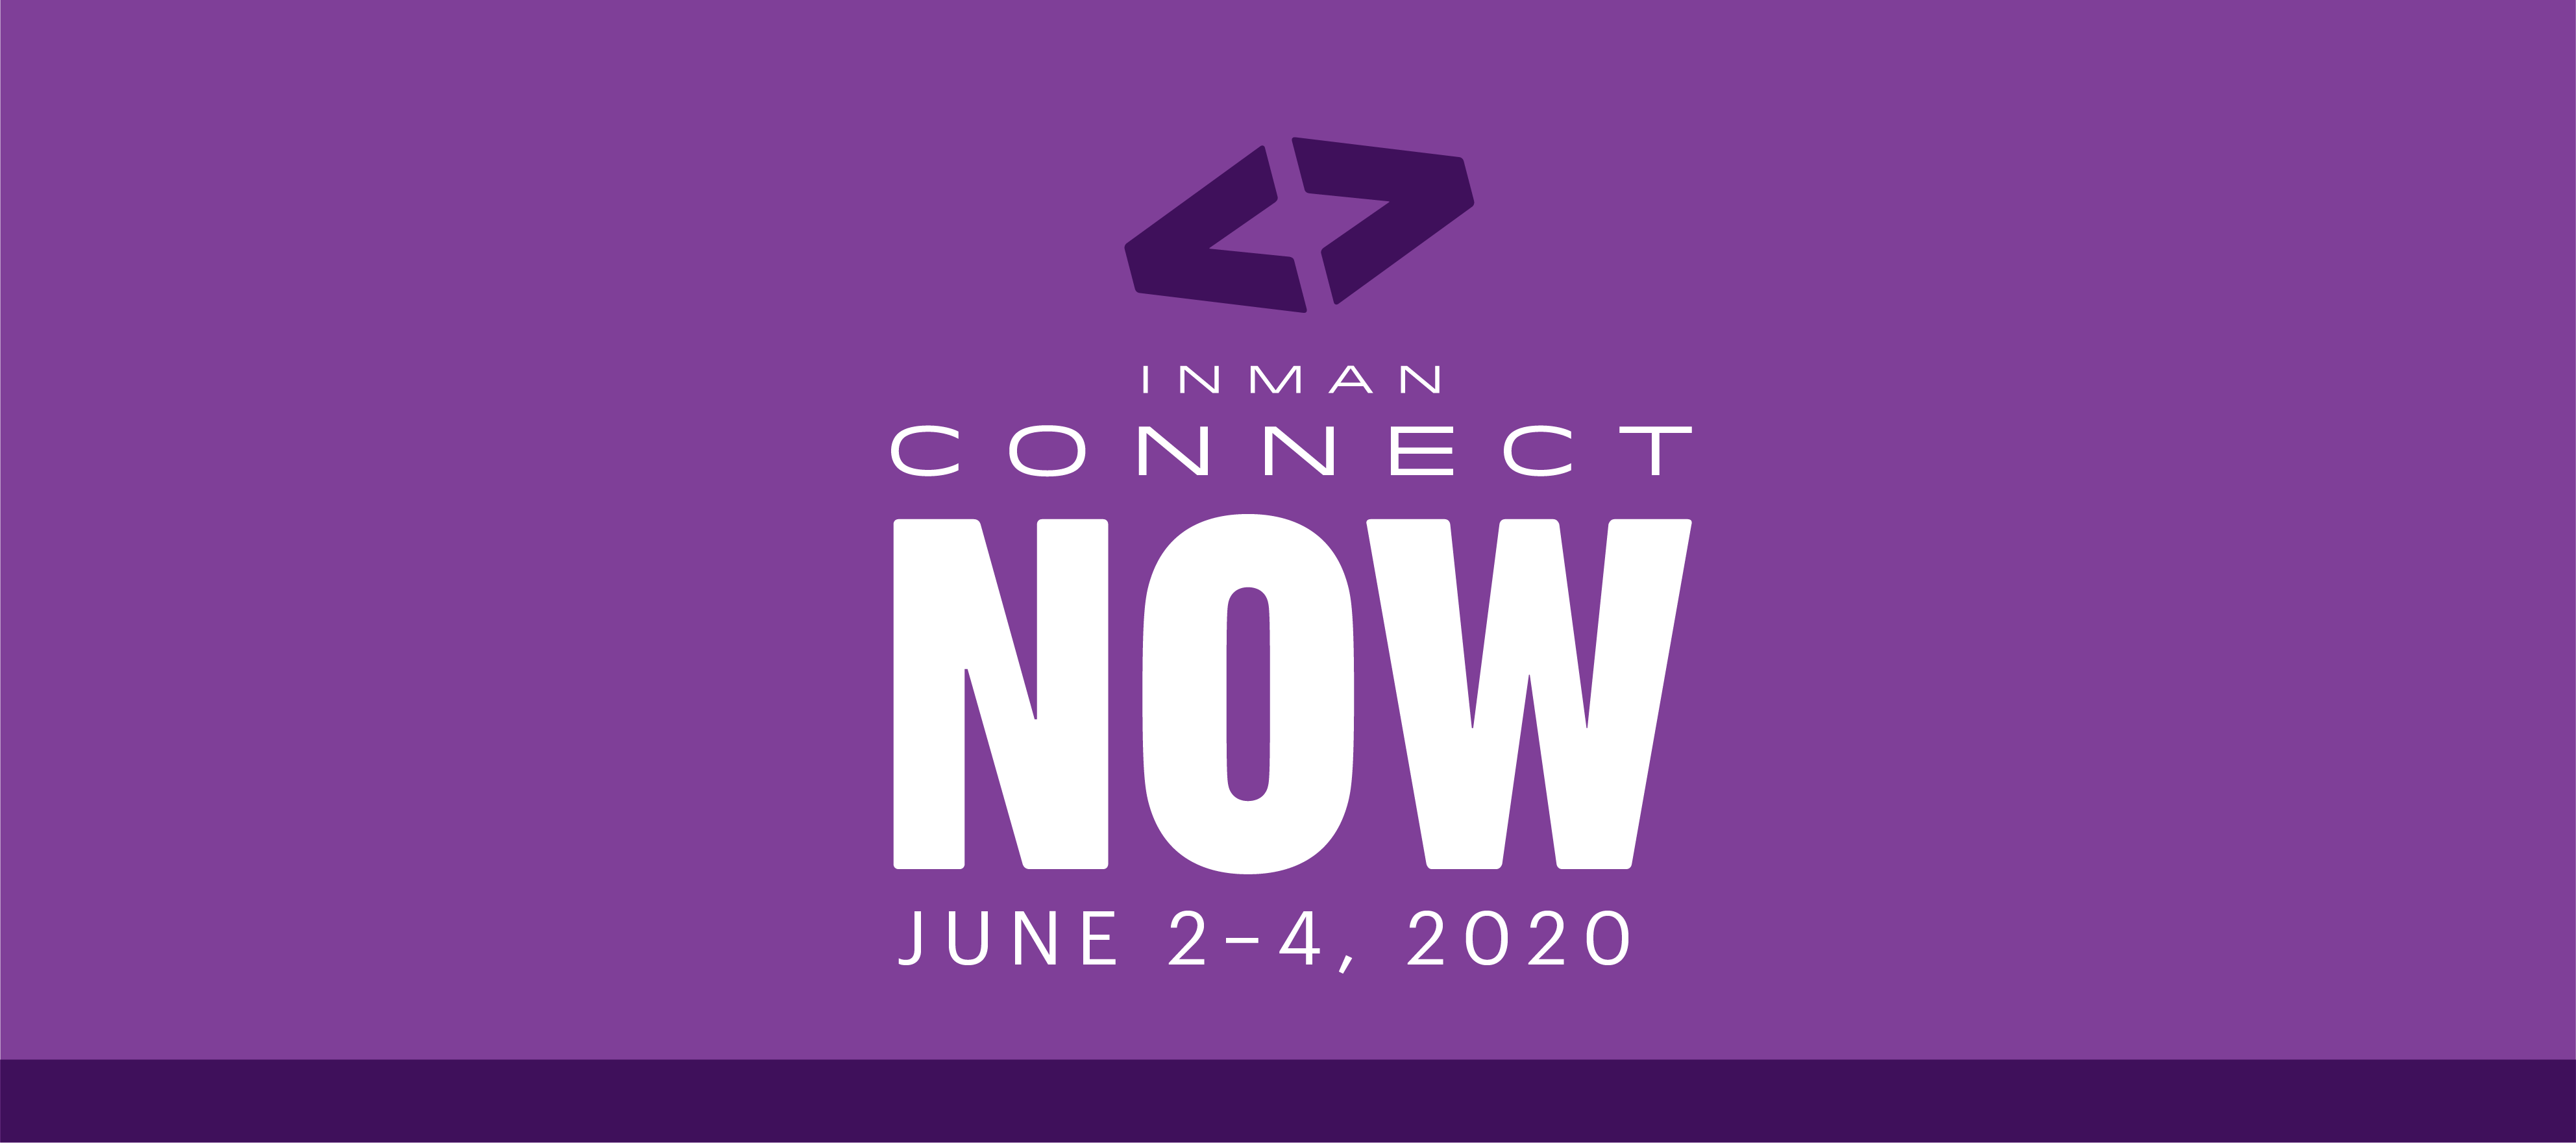 Here's how to track all the Inman Connect Now buzz